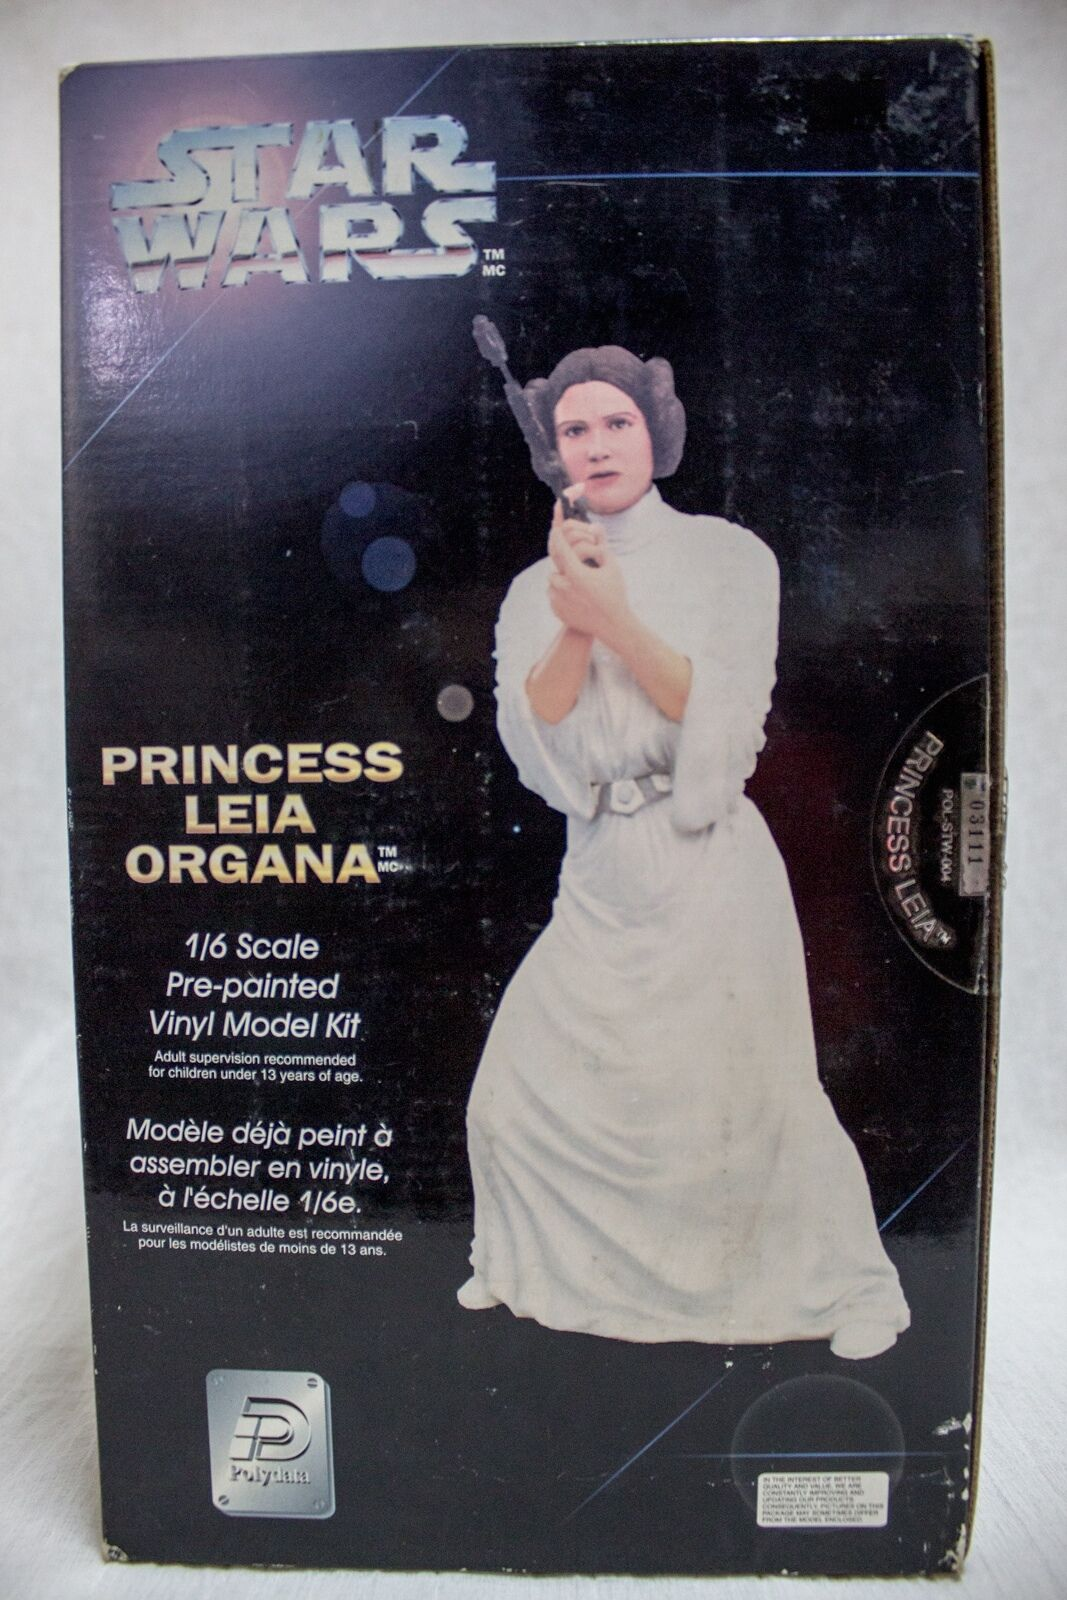 Star Wars 1 6 scale pre-painted Vinyl Model Kit Princess Leia Organa Figure